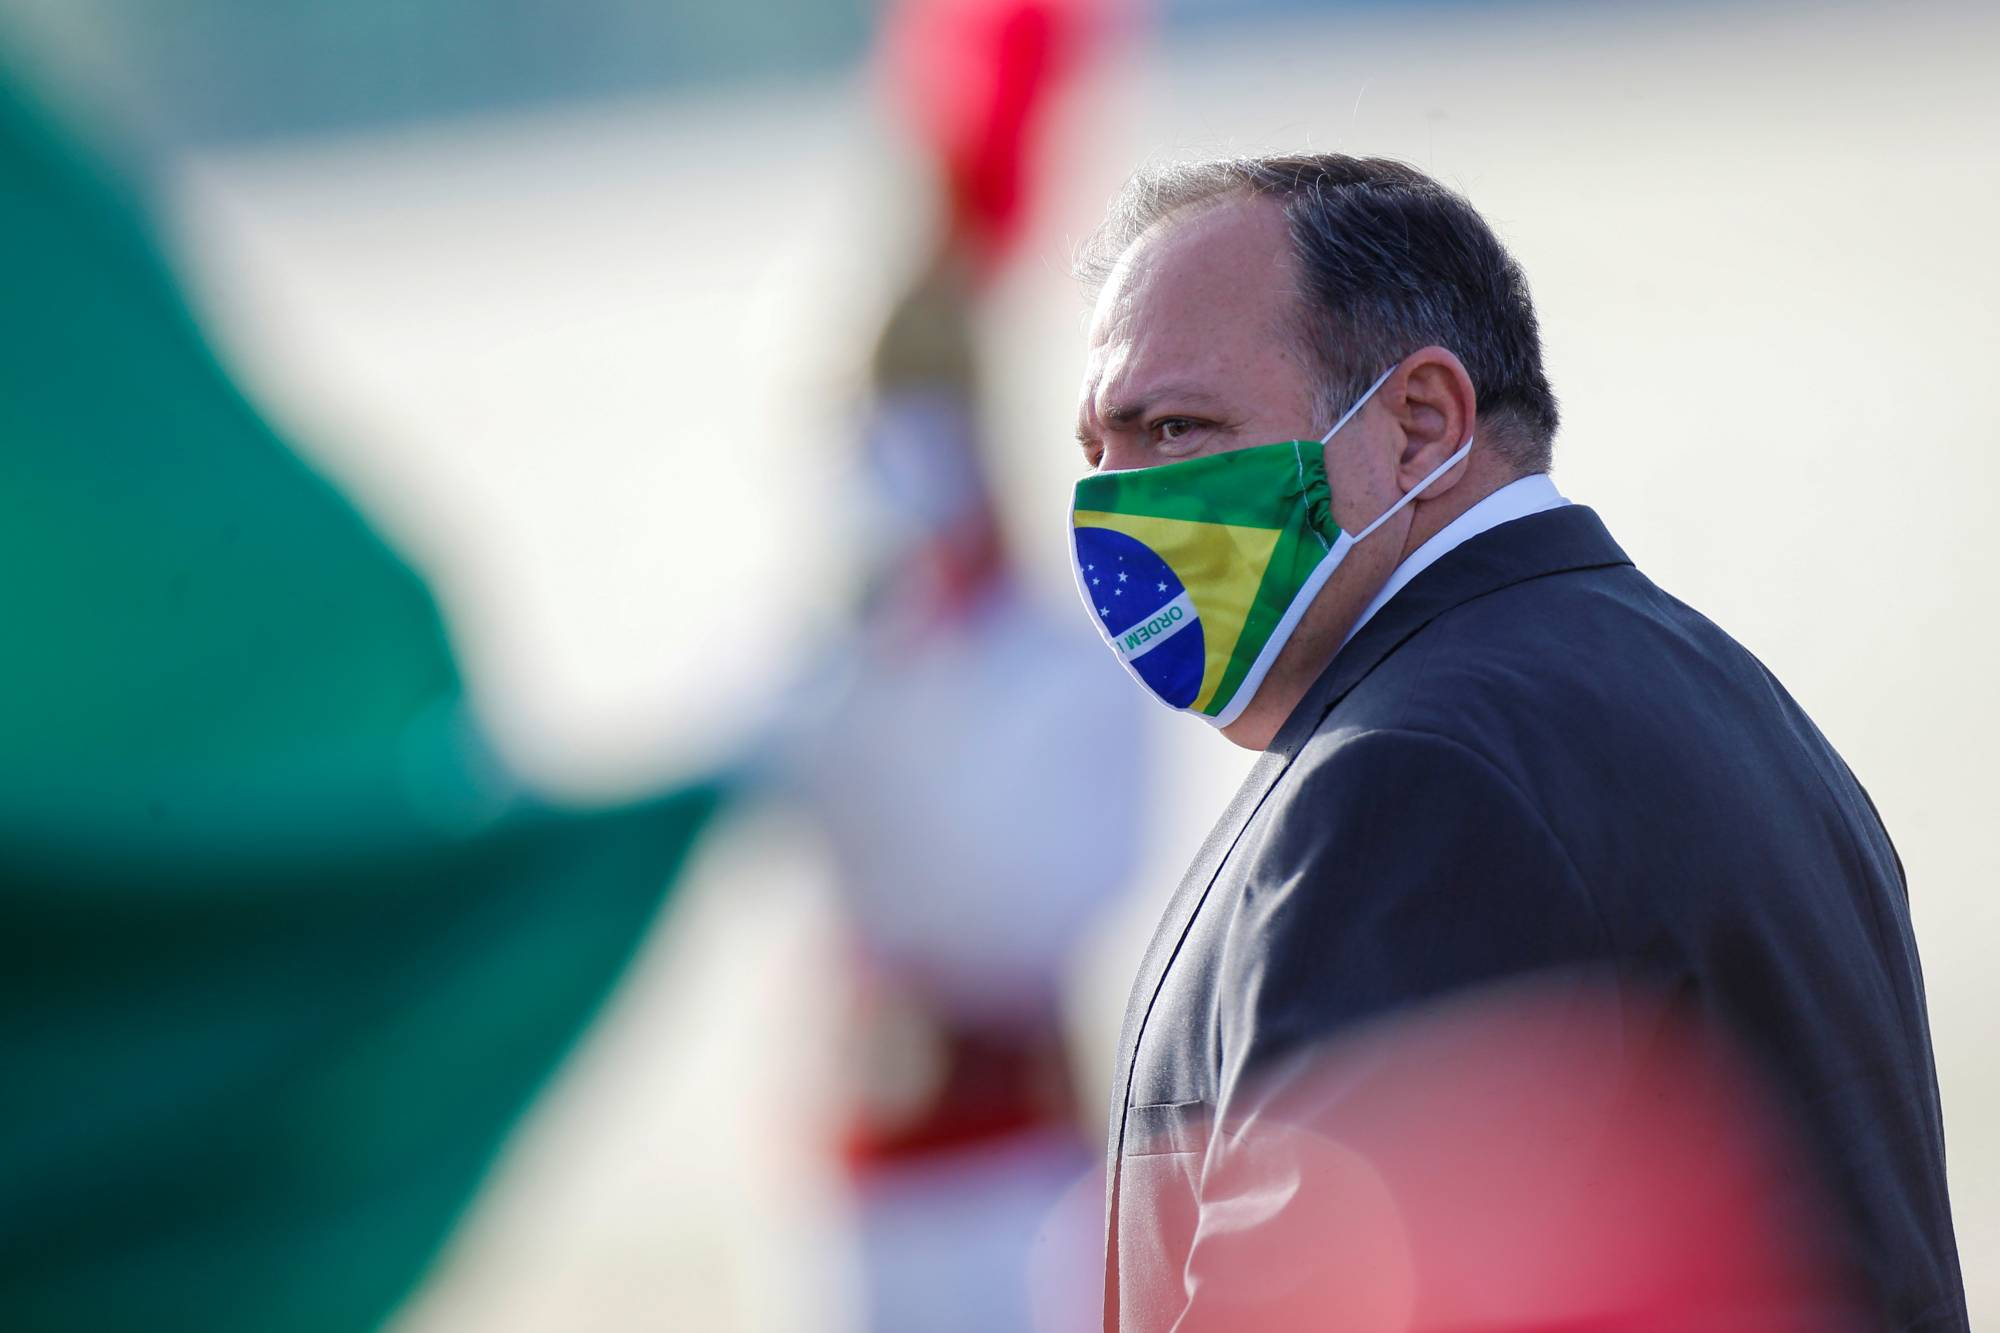 Eduardo Pazuello, an active-duty army general, took over as Brazil's health minister on May 15. | REUTERS